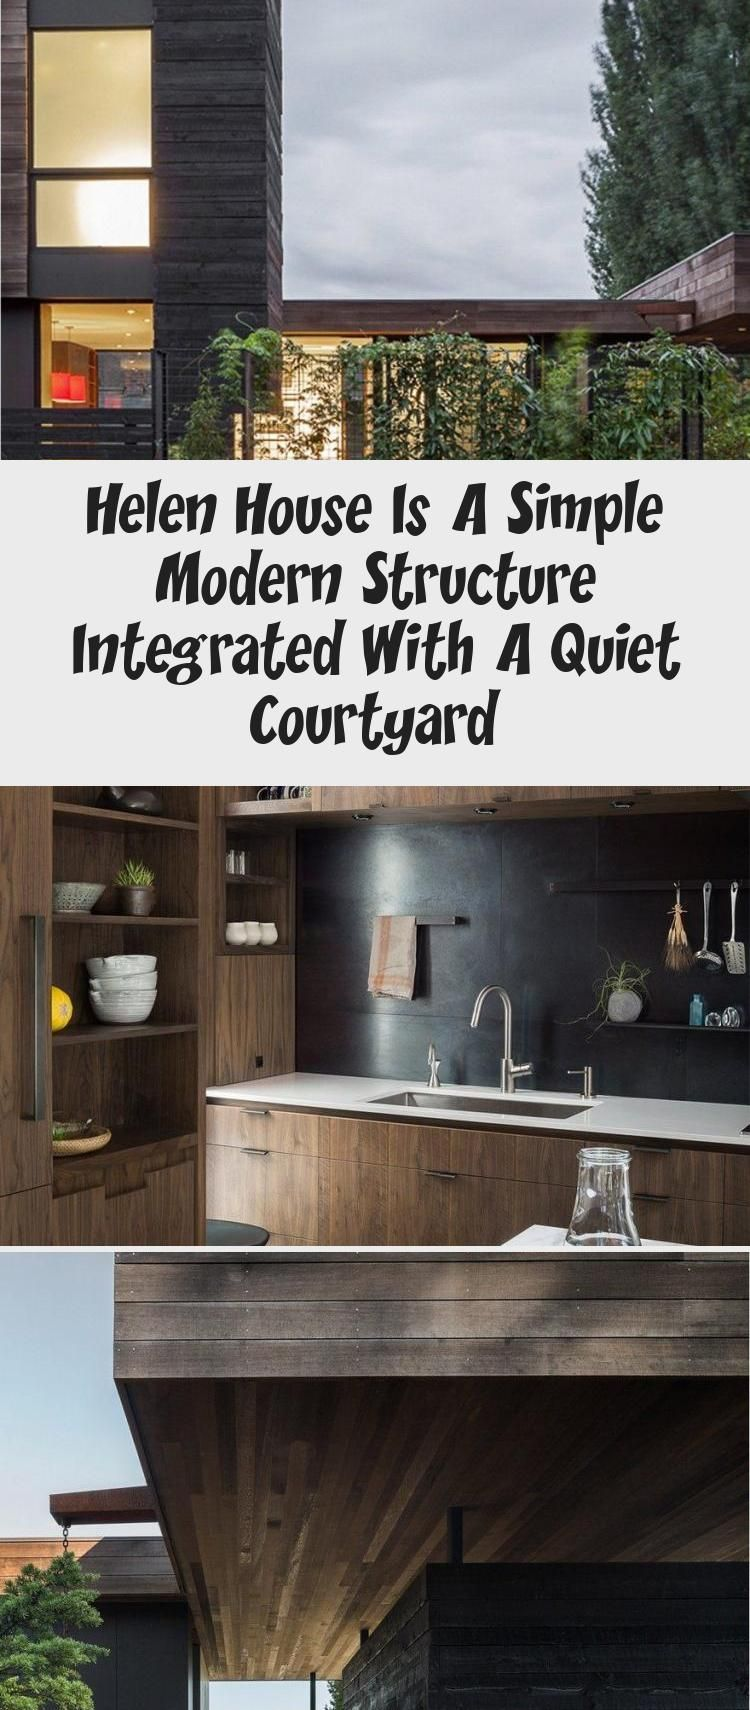 Helen House is a Simple Modern Structure Integrated with a Quiet Courtyard #ModernArchitectureInteriorStudioApartments #ModernArchitectureInteriorDesign #ModernArchitectureInteriorHotel #ModernArchitectureInteriorGardens #ModernArchitectureInteriorSouthAfrica